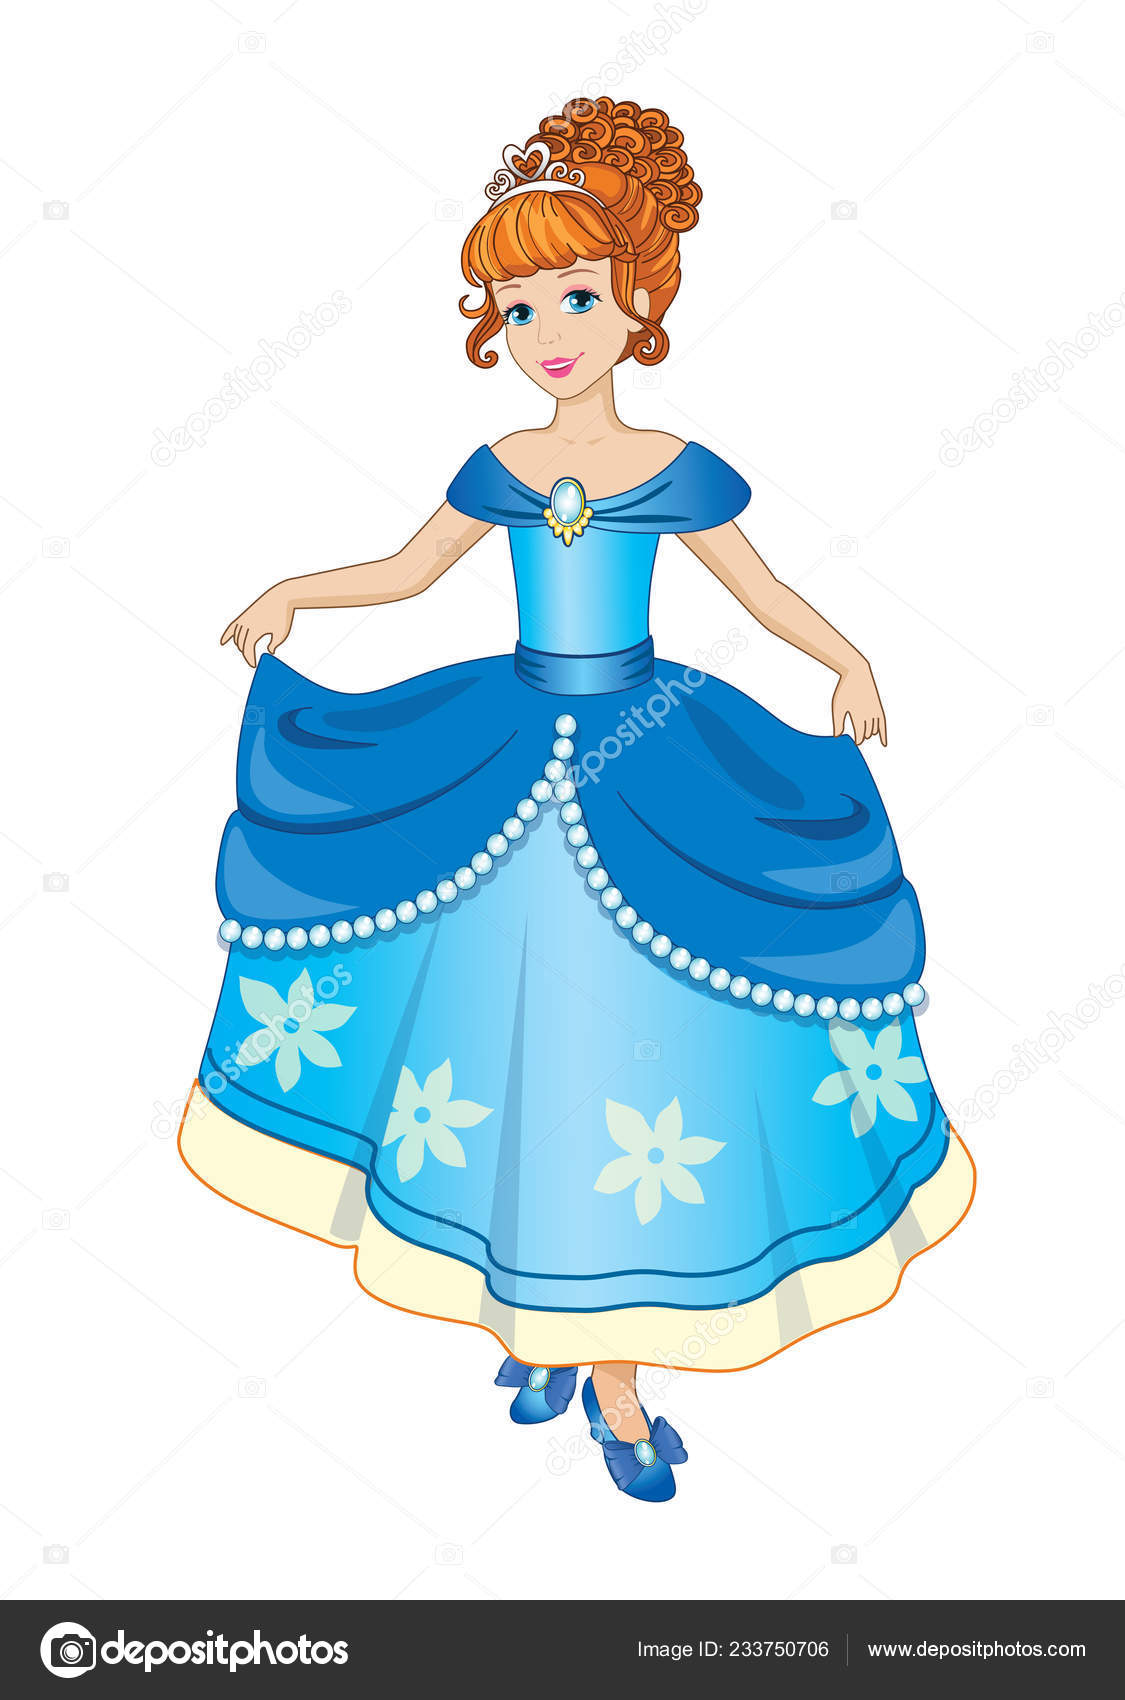 Beautiful Princess Ball Gown Children Illustration Vector